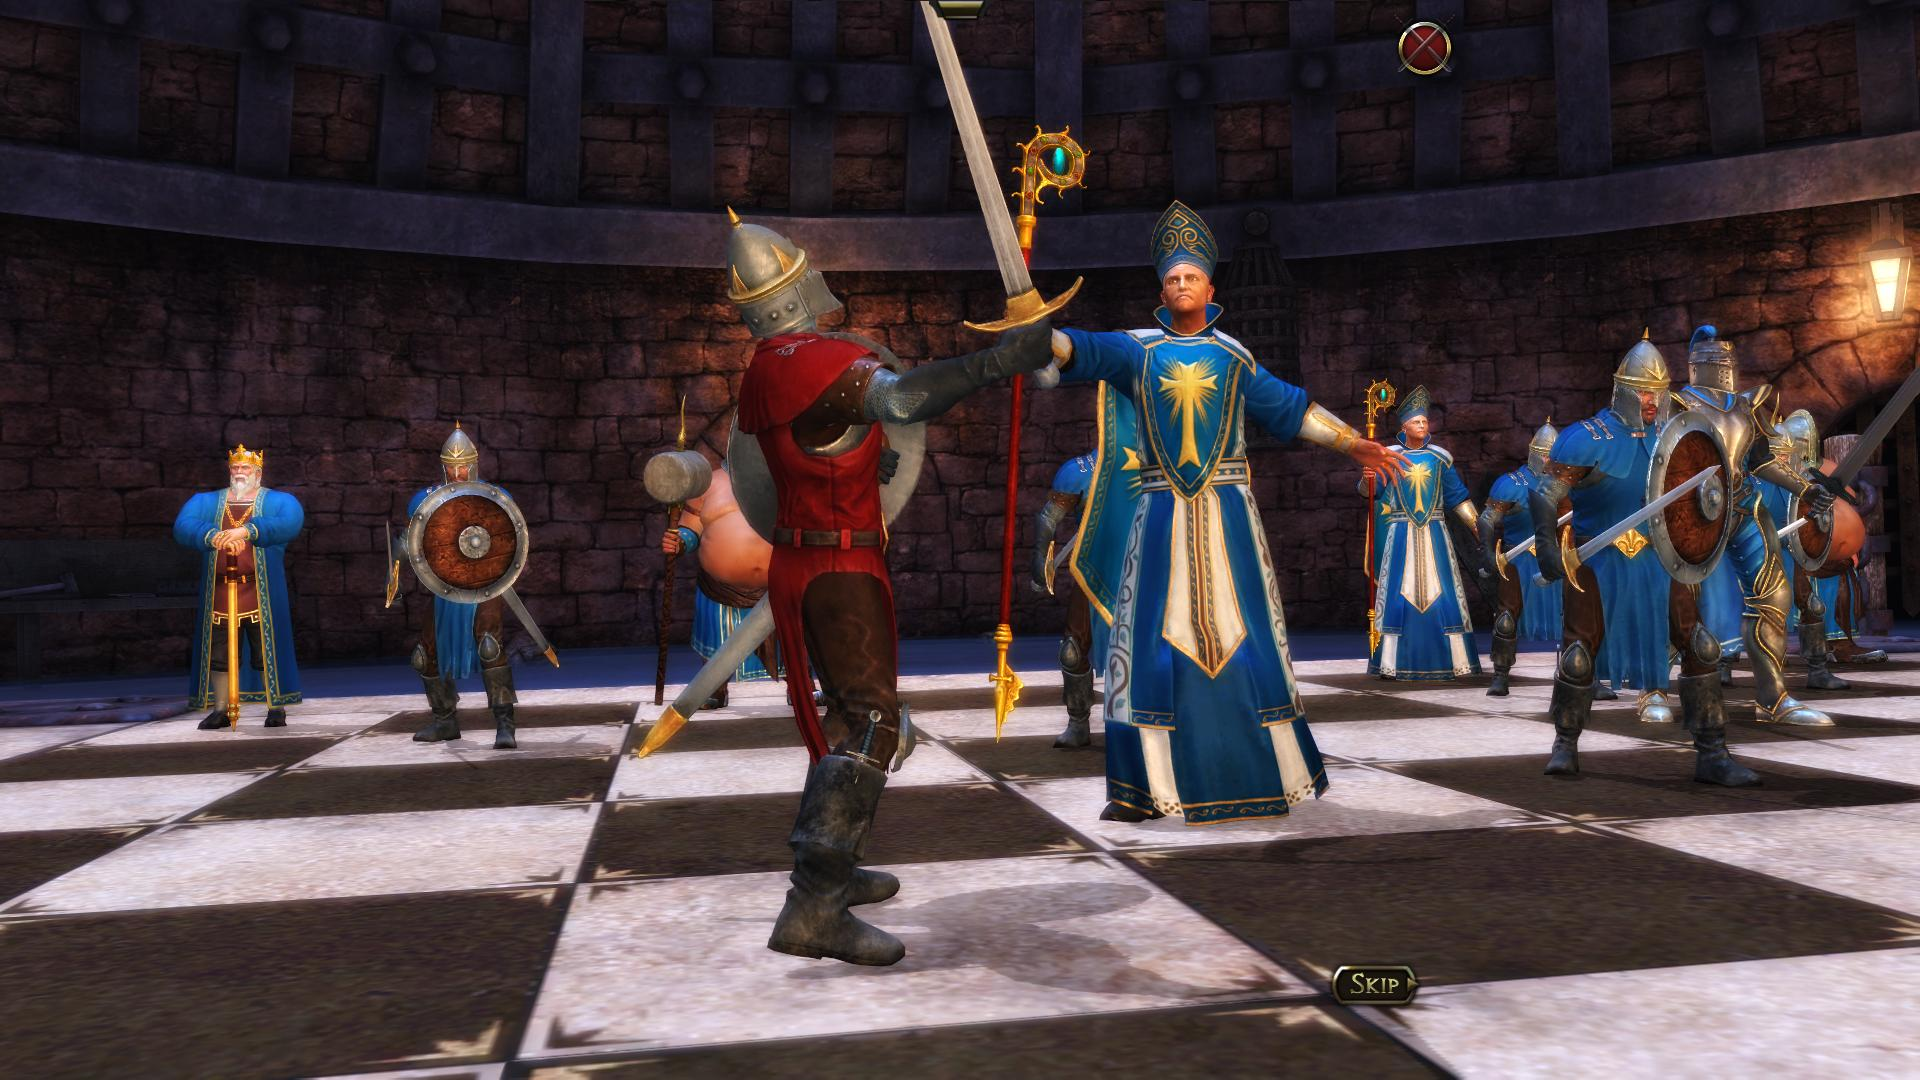 Animated Wallpaper Windows 7 Free Download Download Battle Chess Game Of Kings Full Pc Game